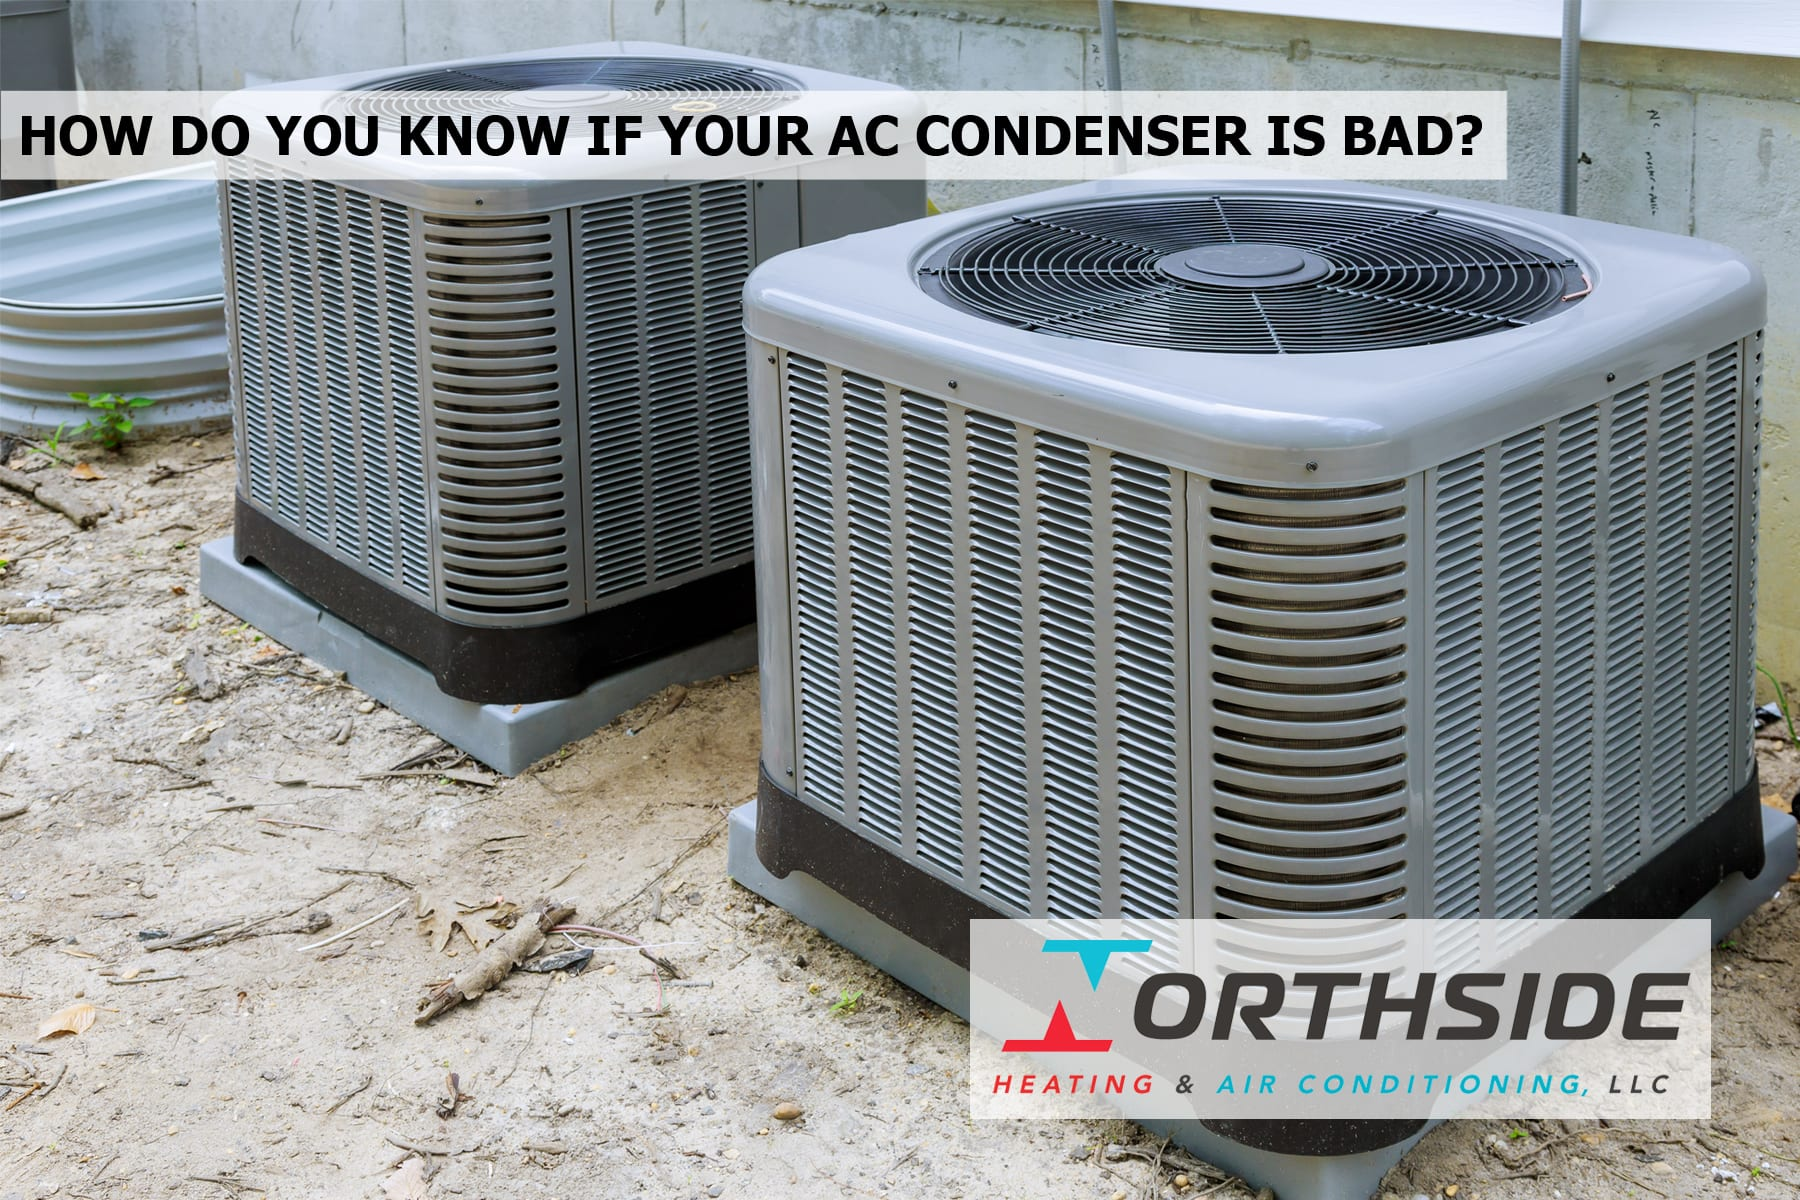 How do you know if your ac condenser is bad